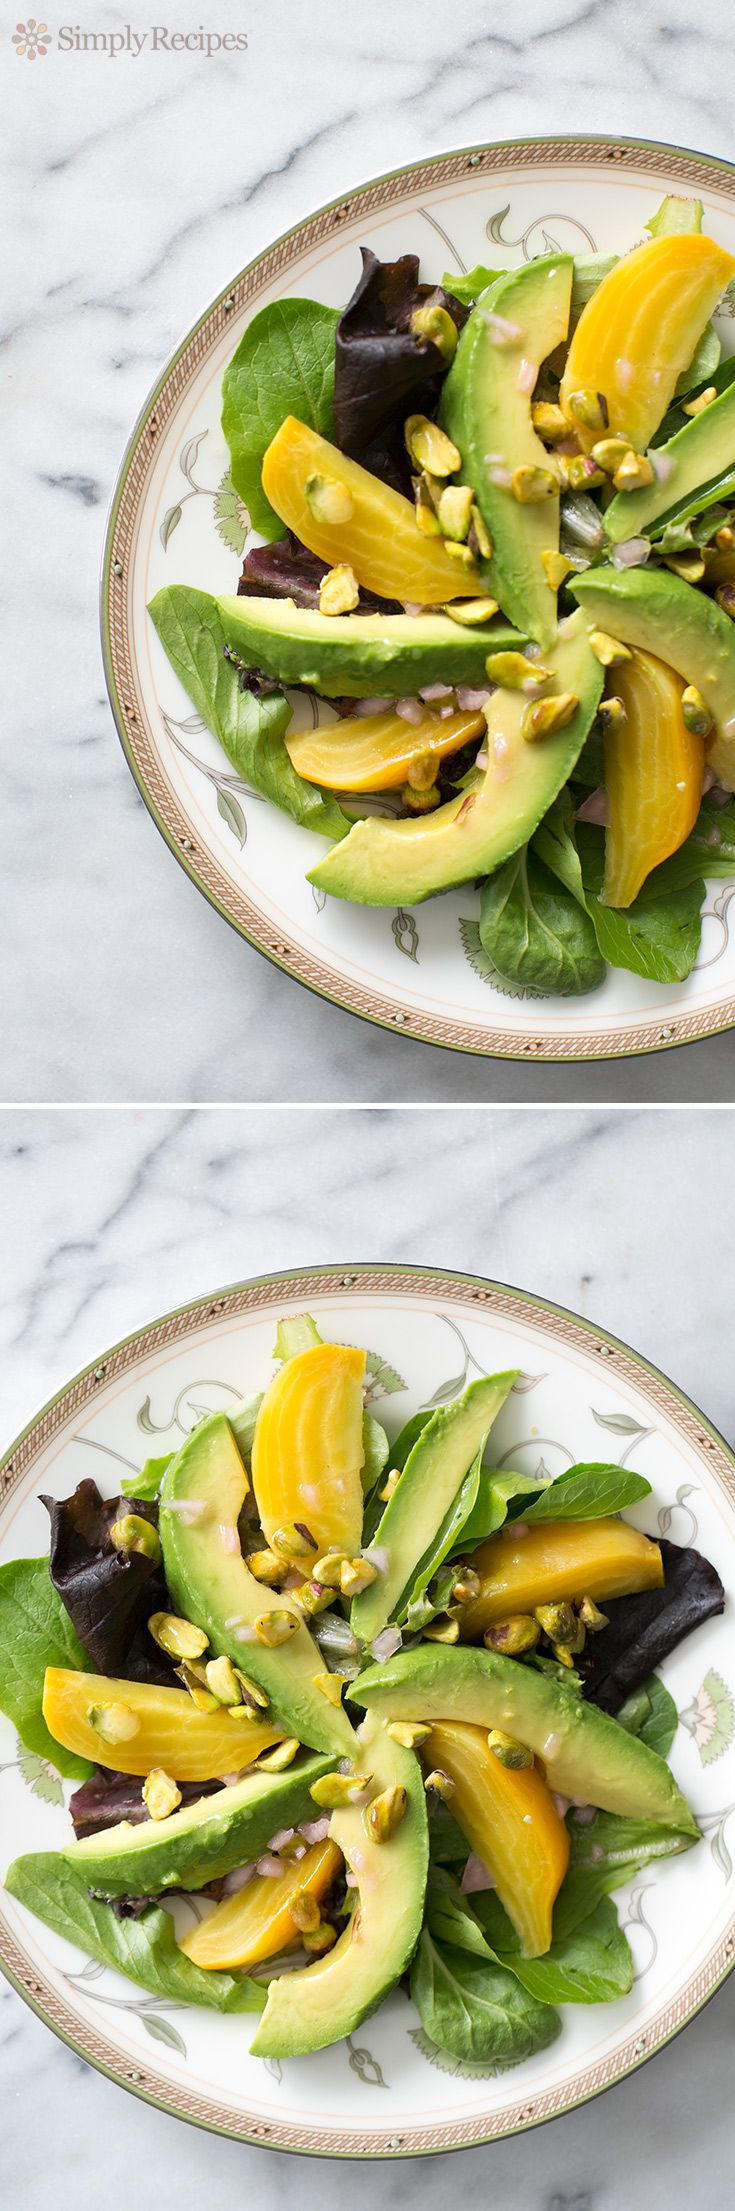 Avocado Beet Salad with Citrus Vinaigrette ~ Simple beet and avocado salad, sprinkled with pistachios and drizzled with a citrusy vinaigrette! ~ SimplyRecipes.com